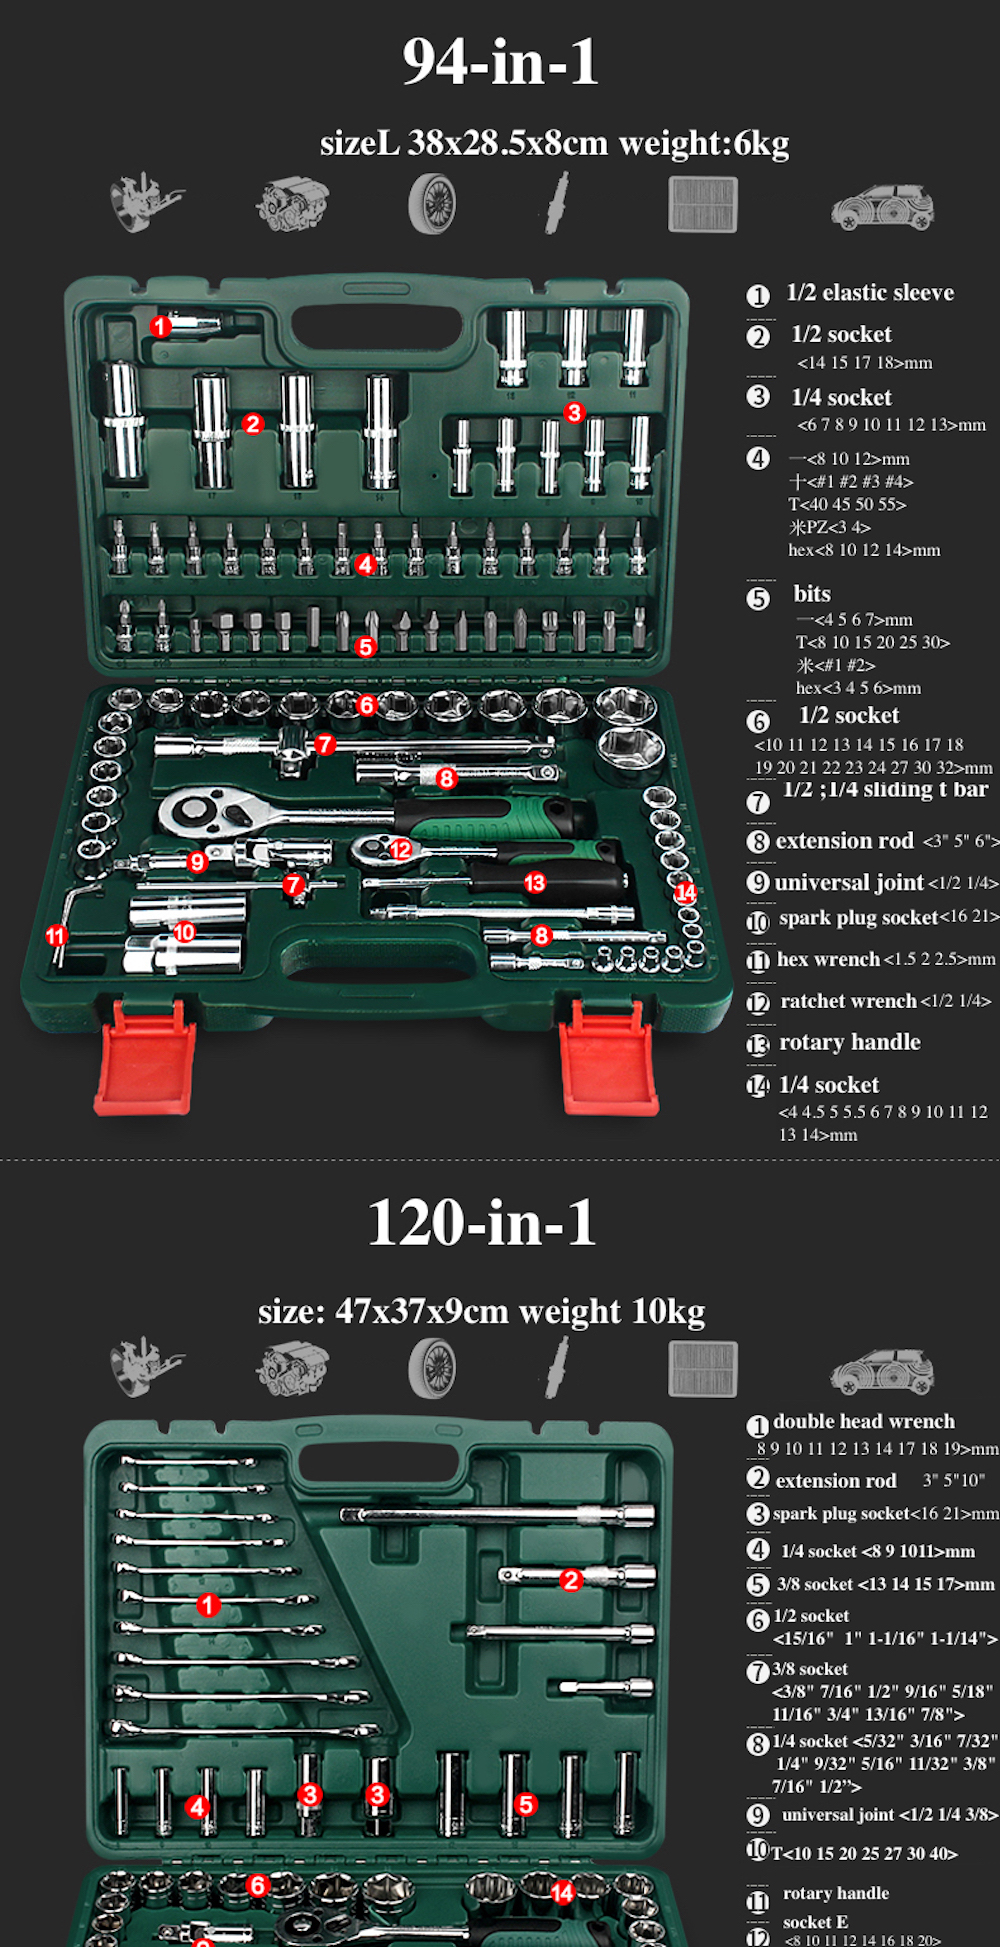 37-in-1 Combination Repairing Kit Handtool Set for Auto Motorcycles Generator Engine Tyre Socket Rachet Wrench Hand Tool